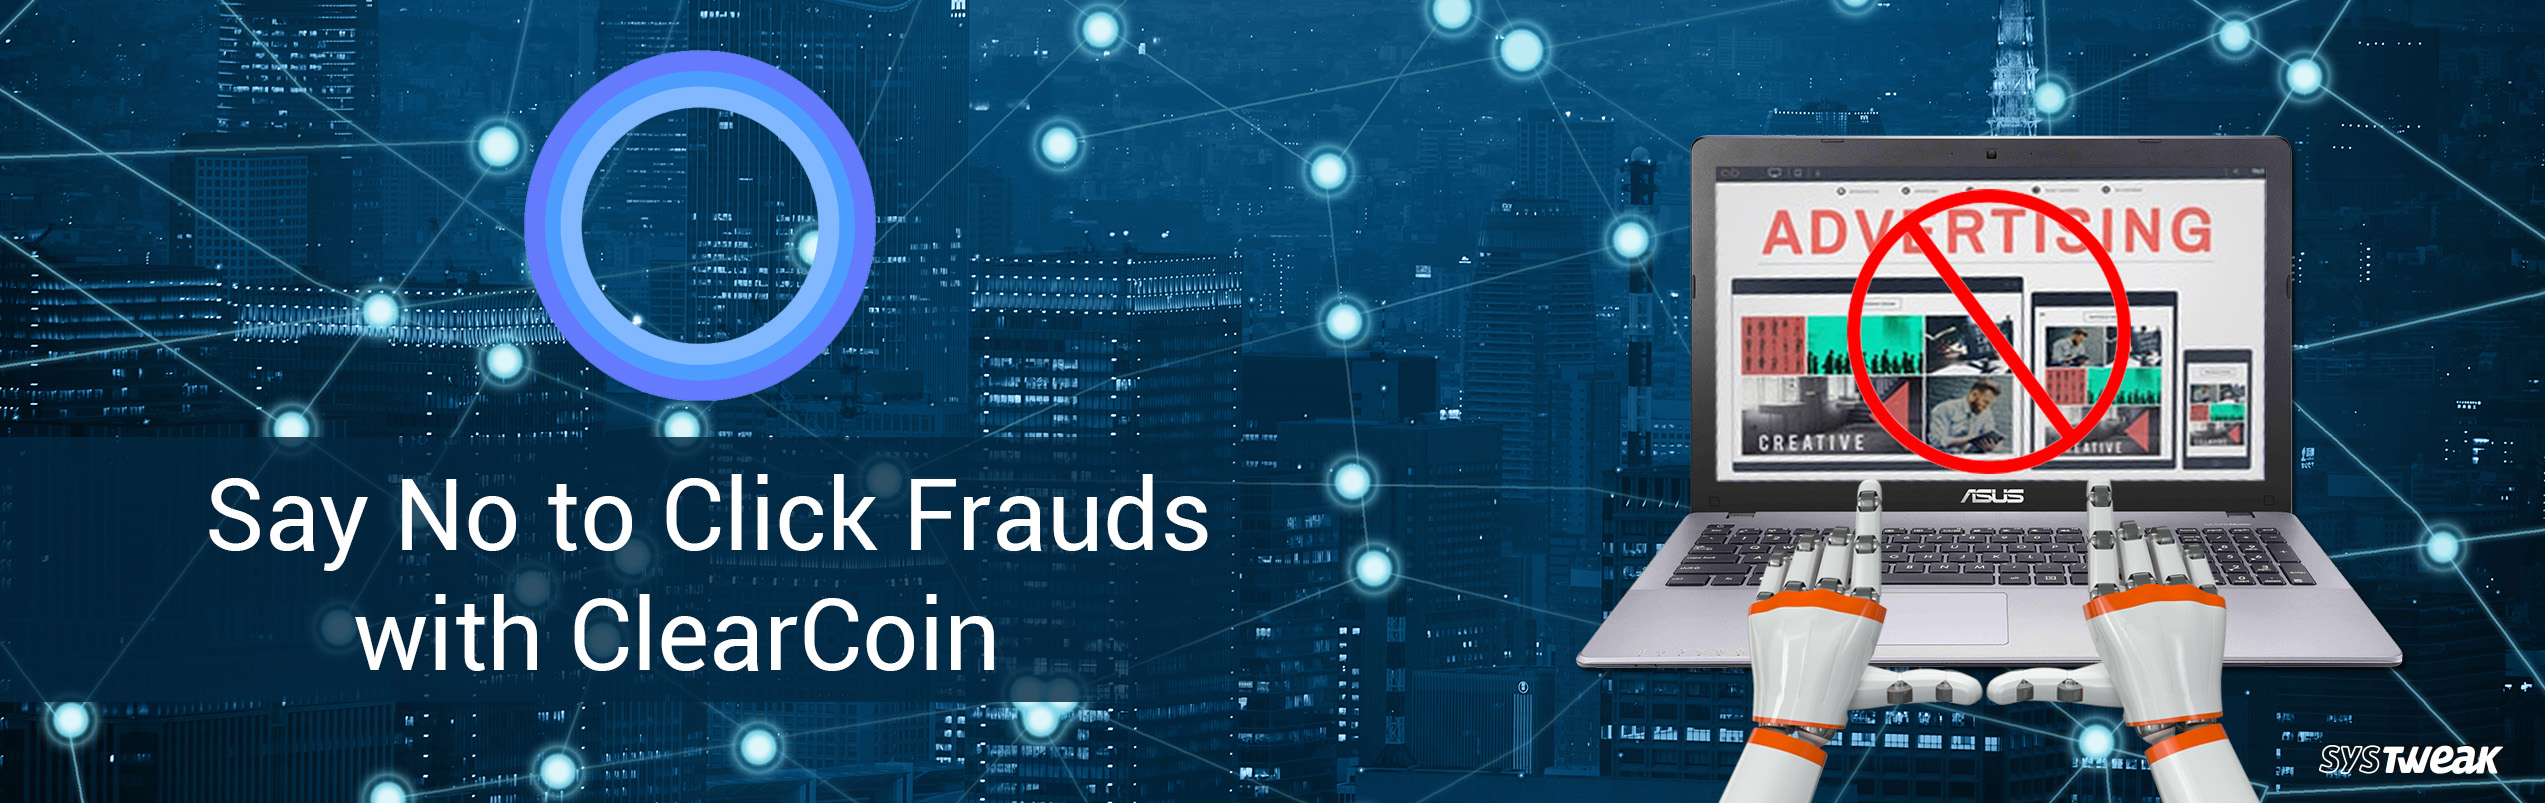 How Can Blockchain Prevent Click Frauds?